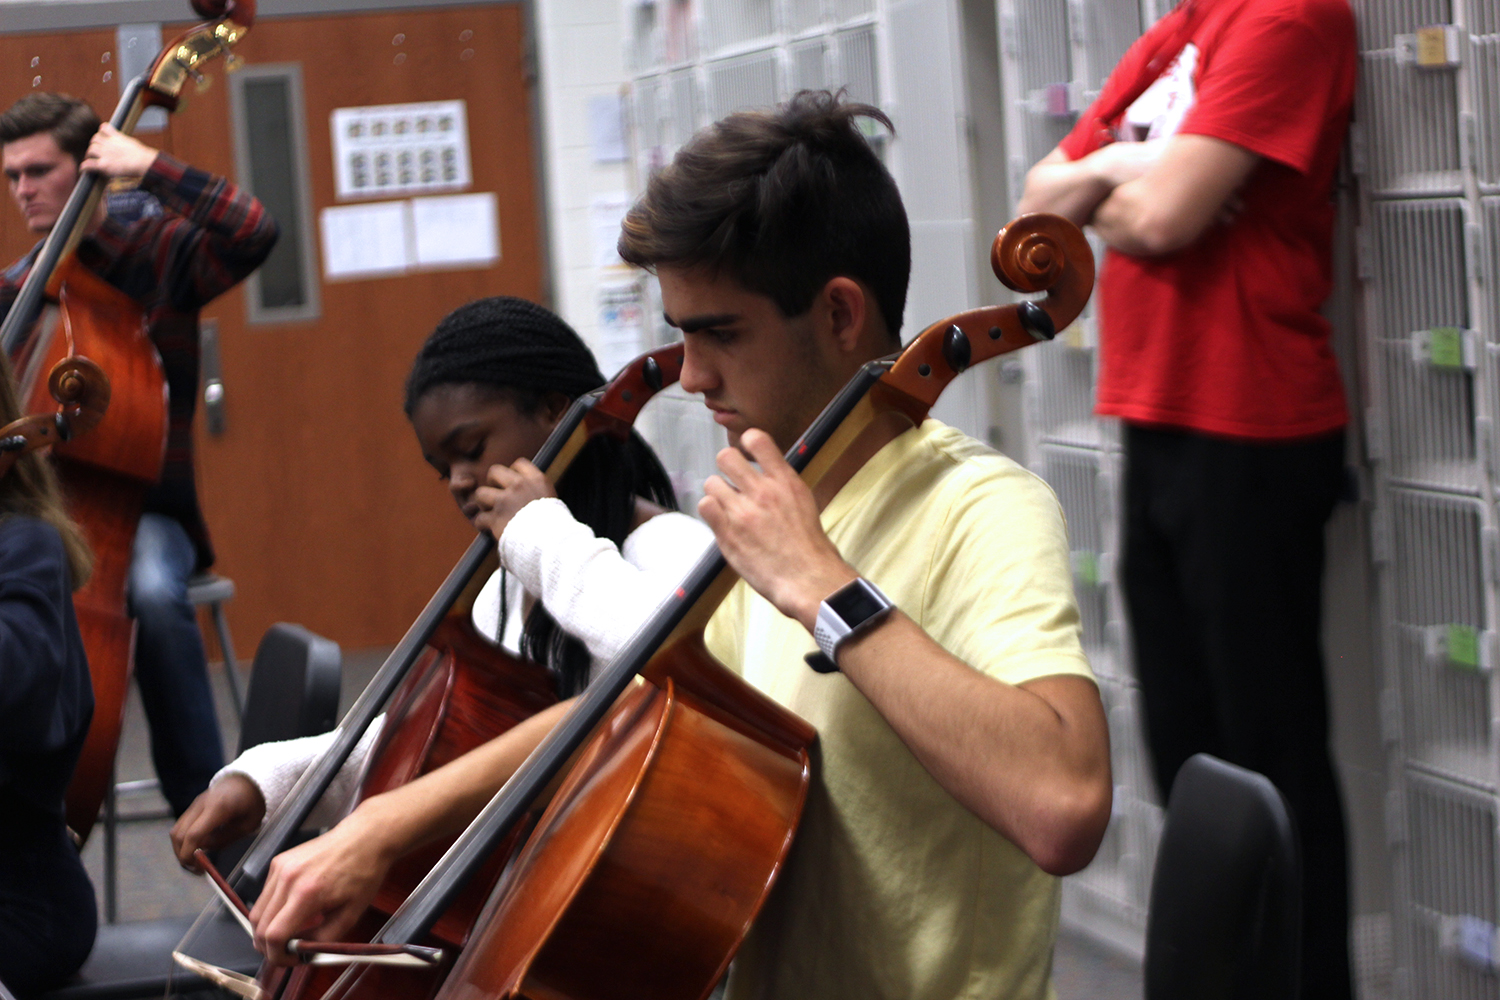 Junior Grayson Mousavijam and Freshman Simi Fadel practice their cellos in preparation for their annual courtyard concert this Monday, October 28th. They will be playing festive halloween music.